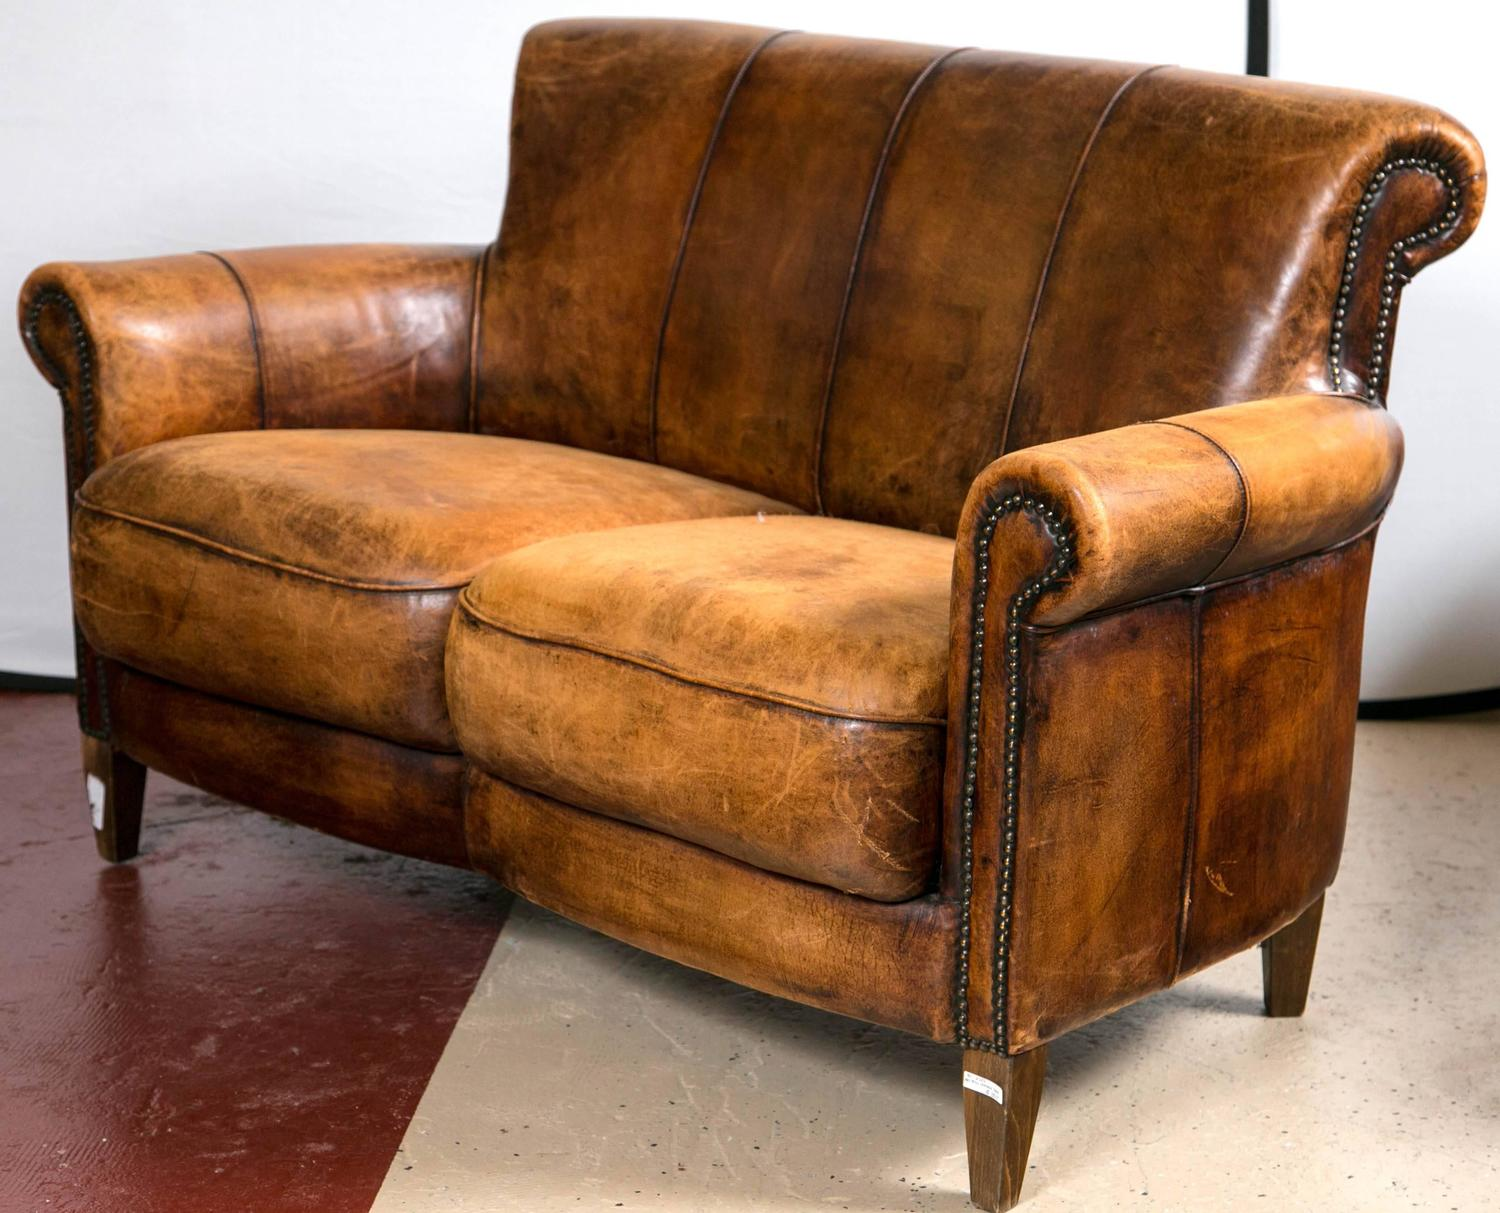 leather couch and chair parisian bistro chairs vintage french distressed art deco sofa at 1stdibs